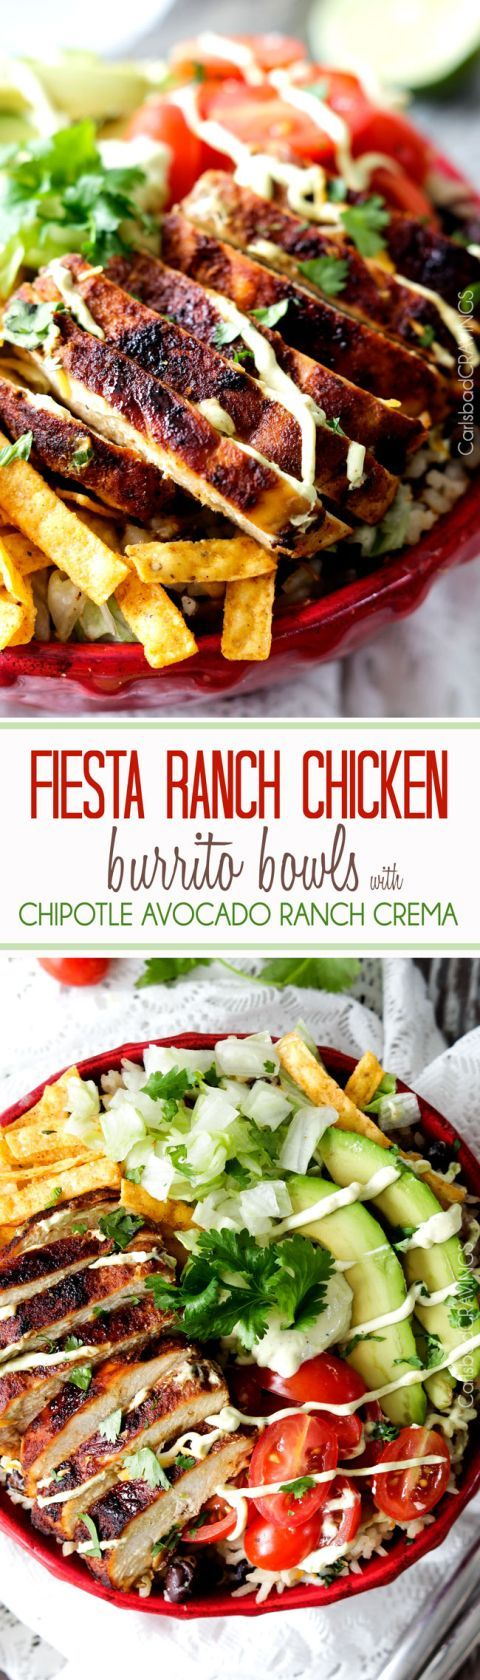 Ranch Chicken Burrito Bowls piled with tender, marinated fiesta ranch chicken, cheesy one pot cilantro lime rice with black beans, guilt free Chipotle Ranch Avocado Crema and all your favorite burrito fixins'. An easy, explosion of flavor!